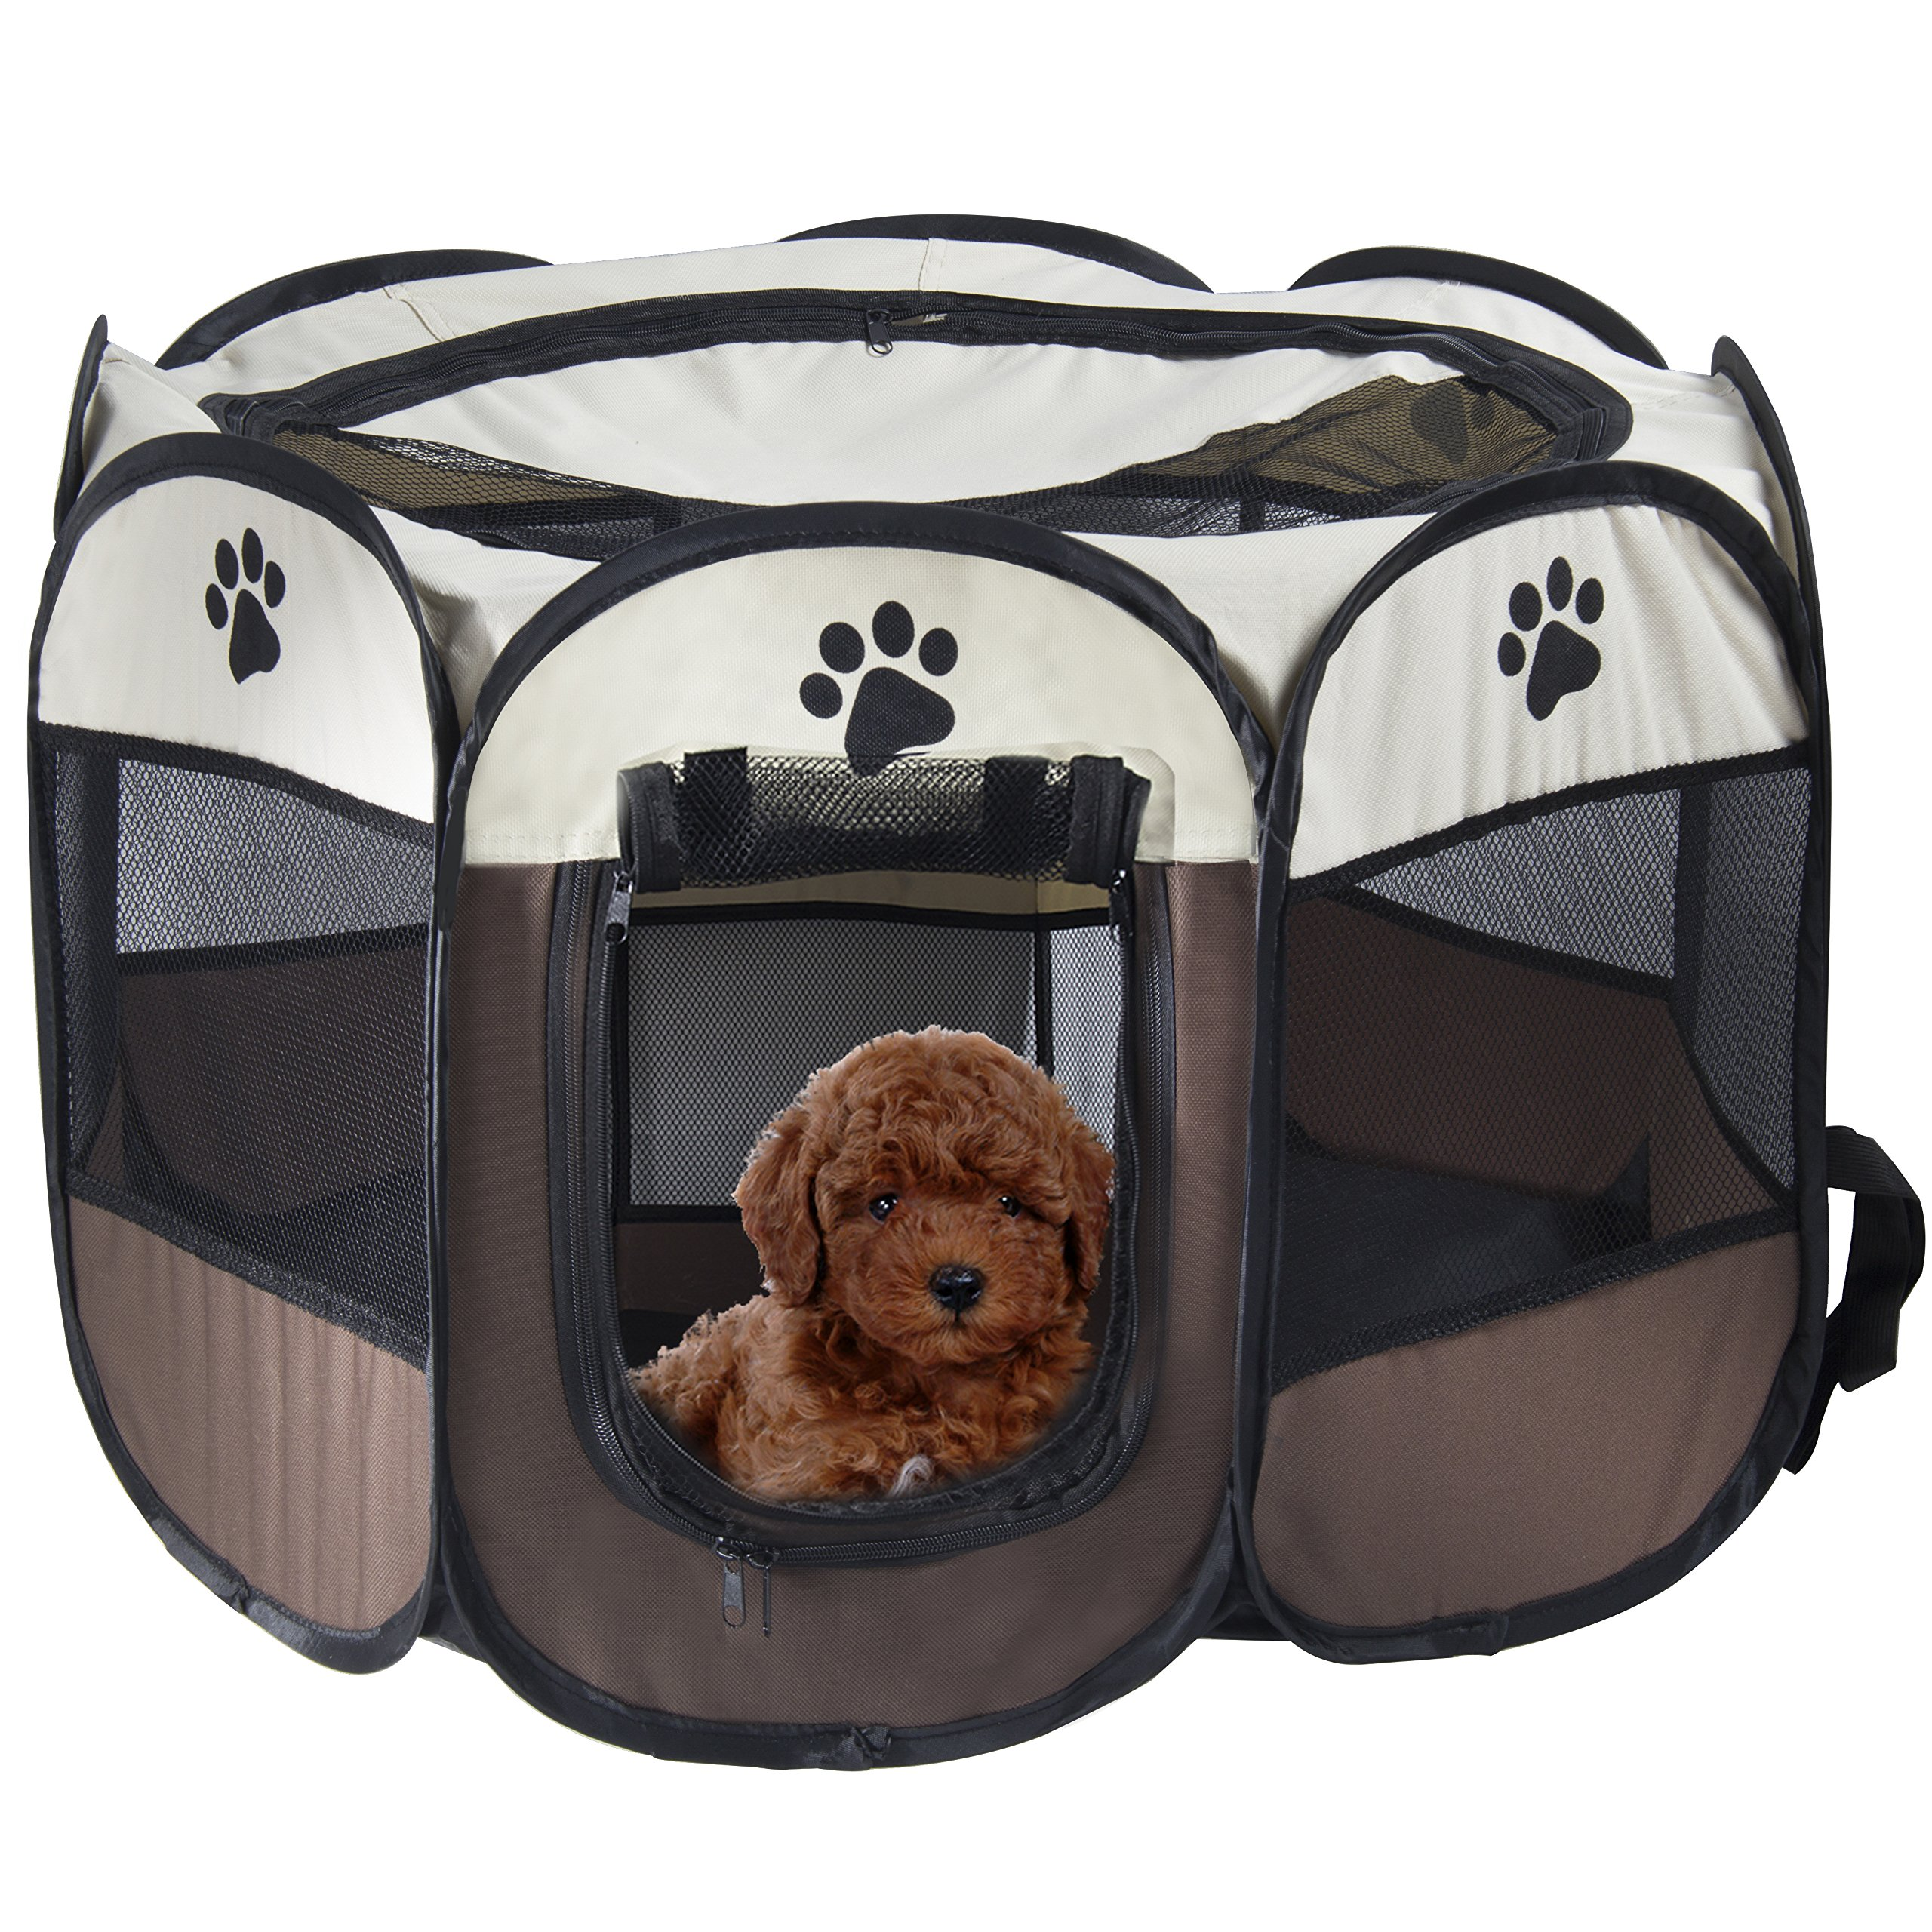 MiLuck Pet Portable Foldable Playpen, Exercise 8-Panel Kennel Mesh Shade Cover Indoor/outdoor Tent Fence For Dogs Cats(L/Brown)